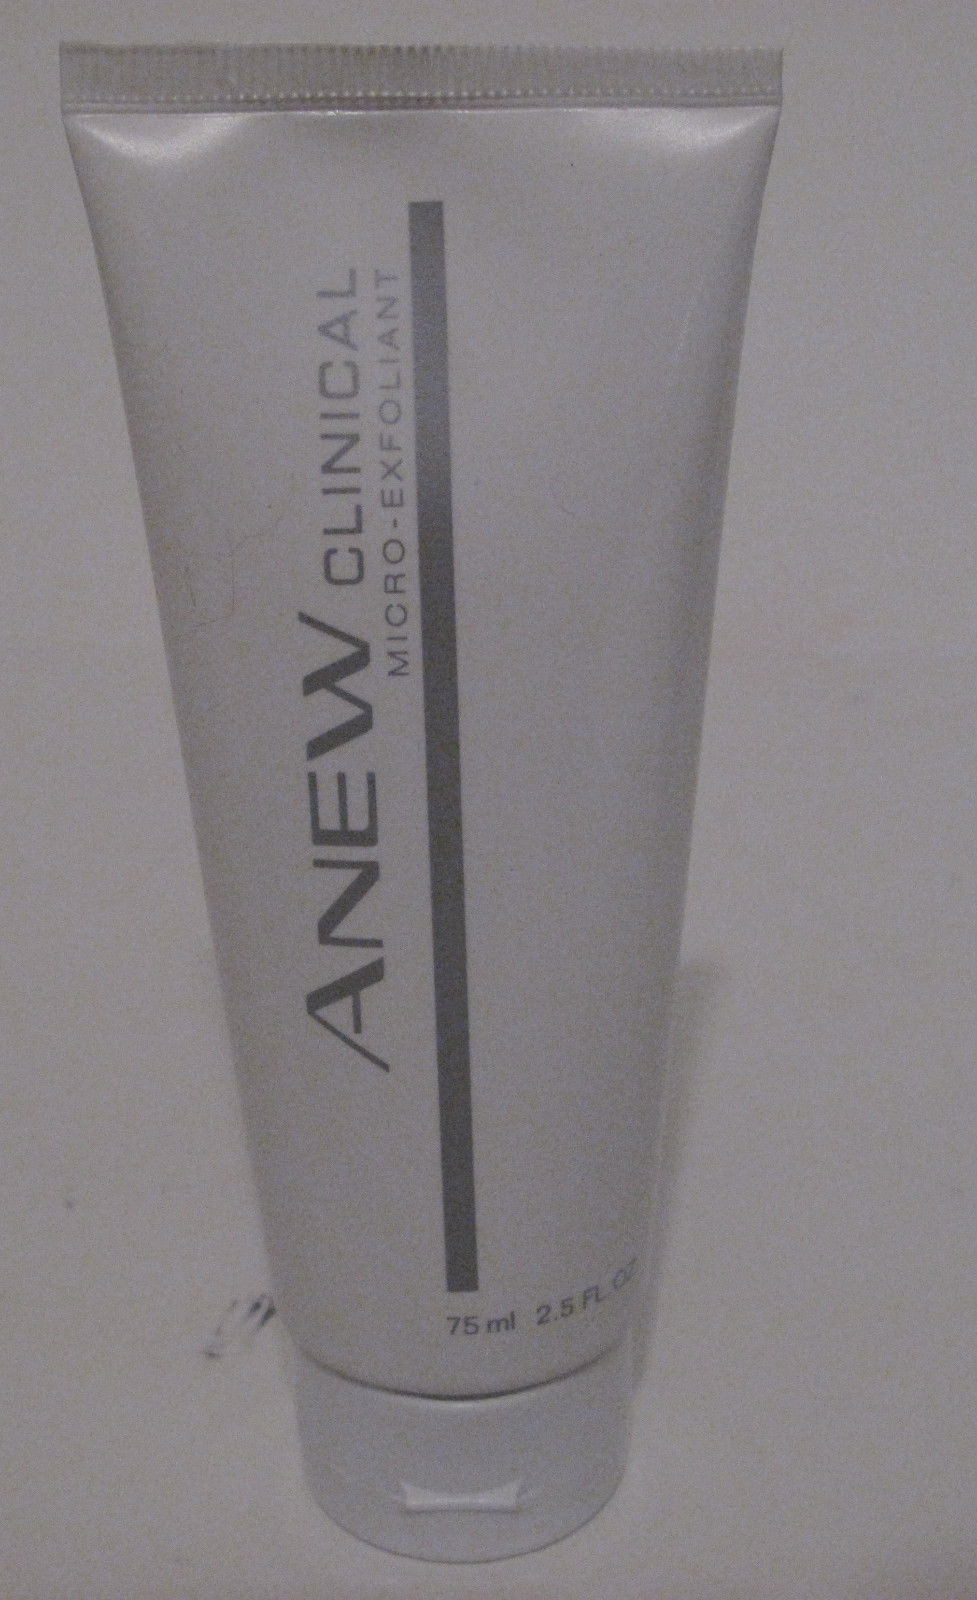 Avon Women Anew Clinical Wrinkle Anti-Aging Face Products 3 Piece All Skin Types